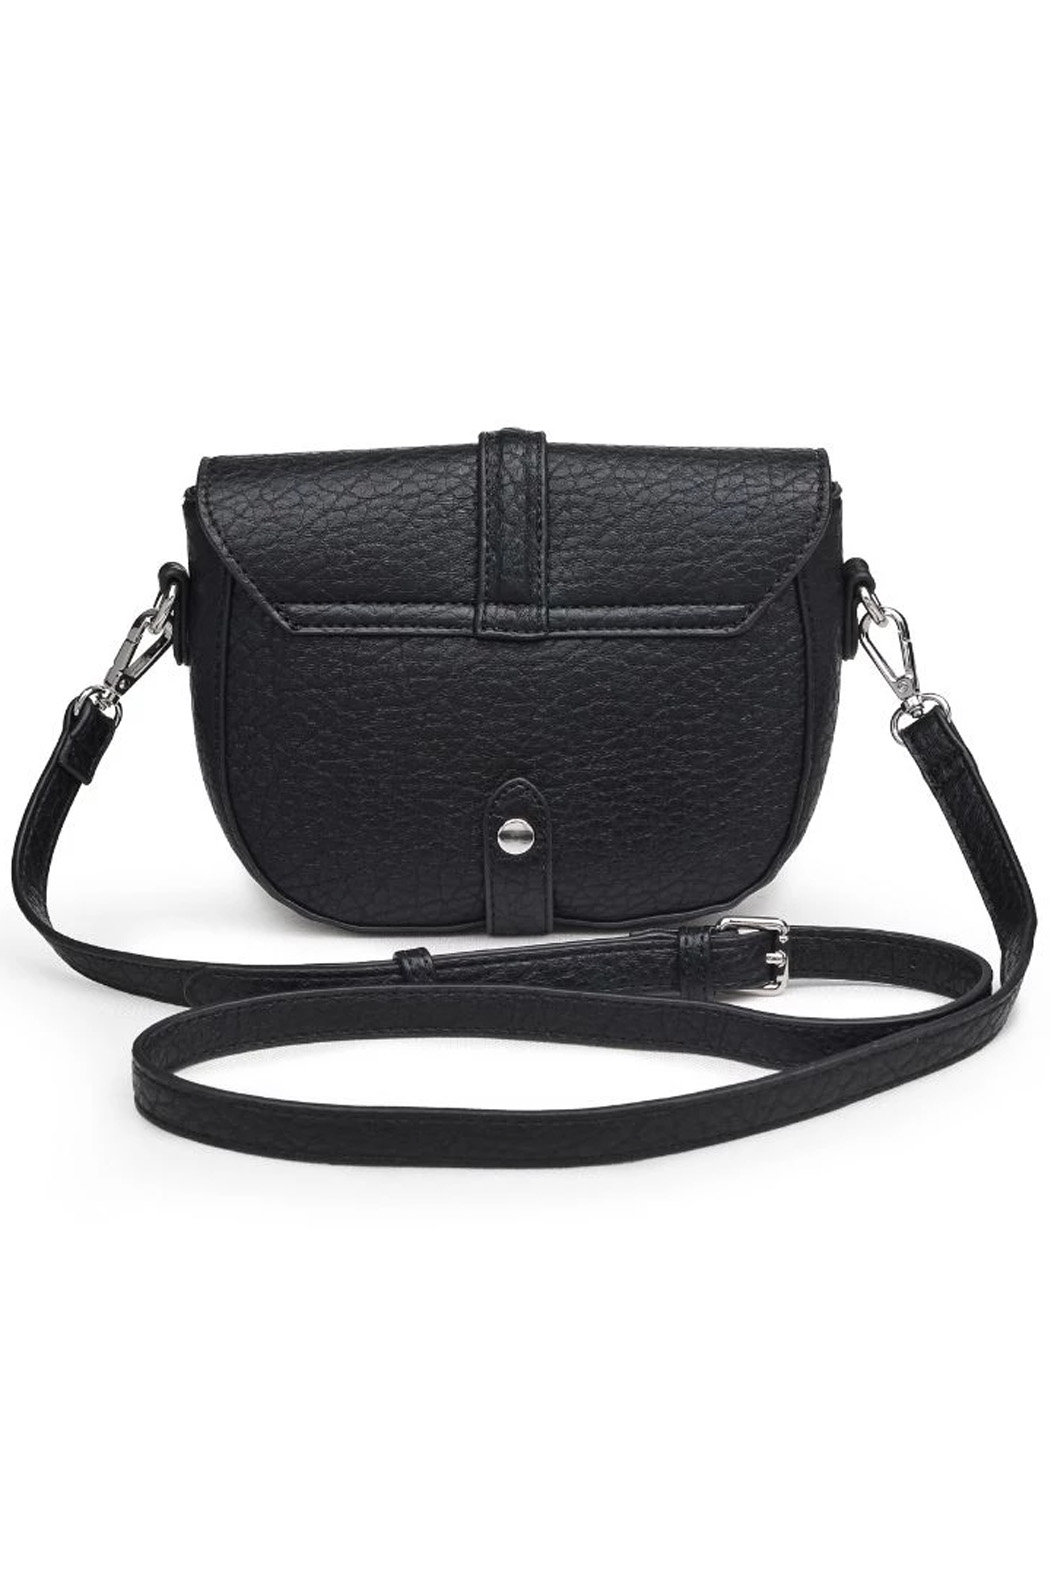 Urban Expressions Rory Vegan Leather Crossbody - Back Cropped Image